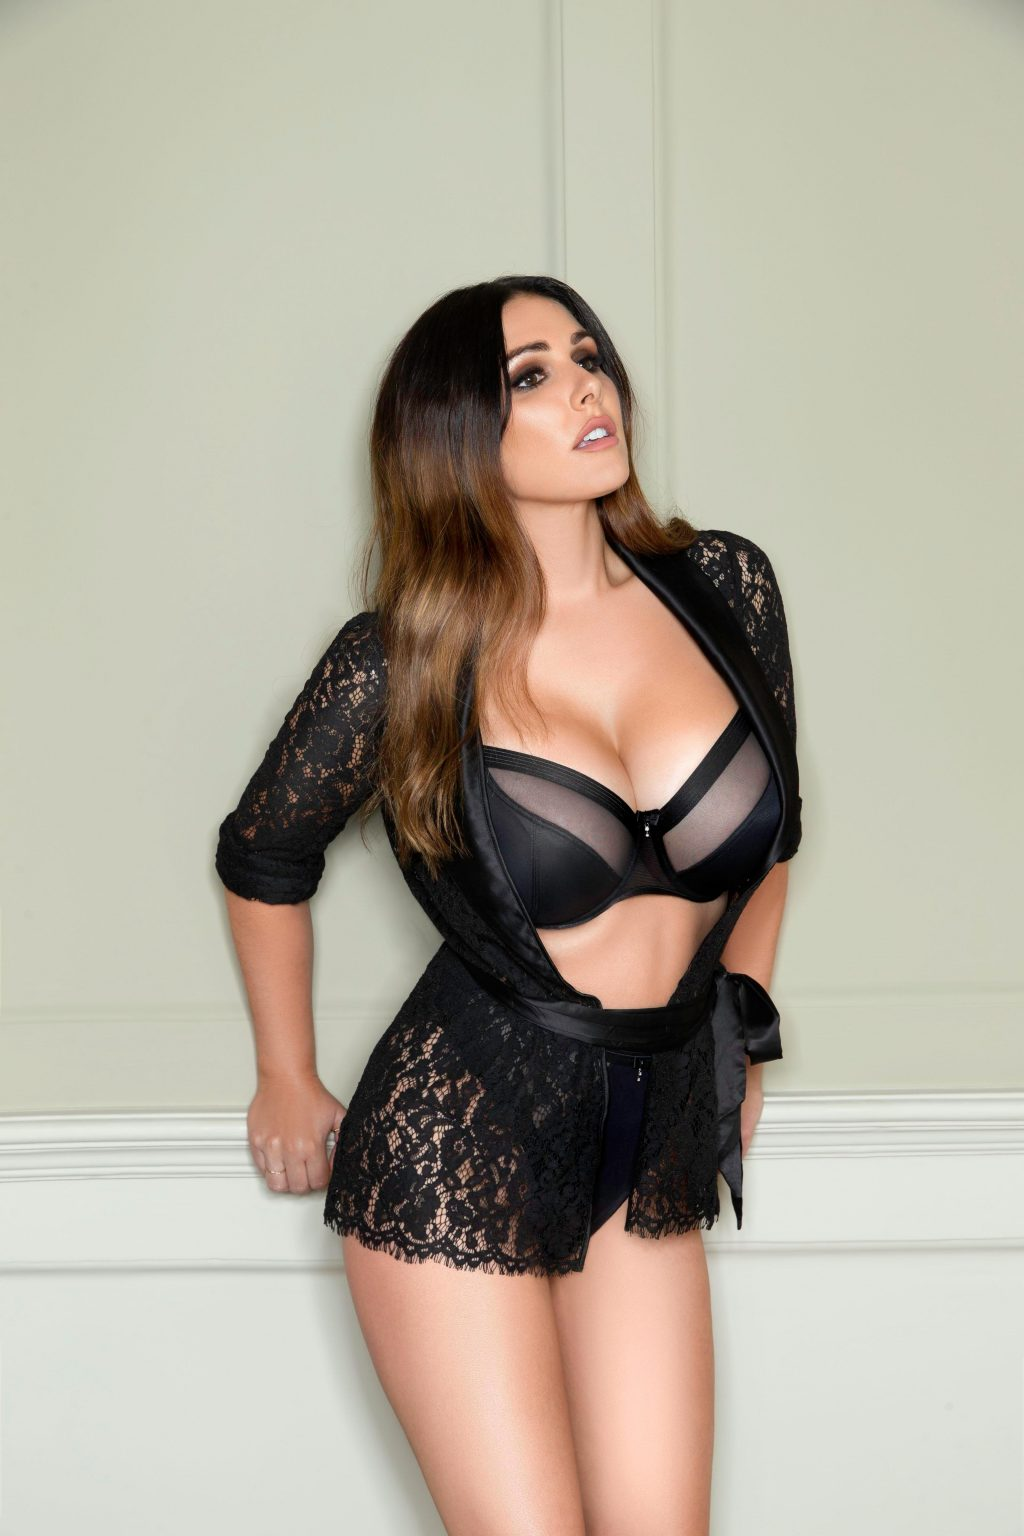 Watch Holy molly fappening video